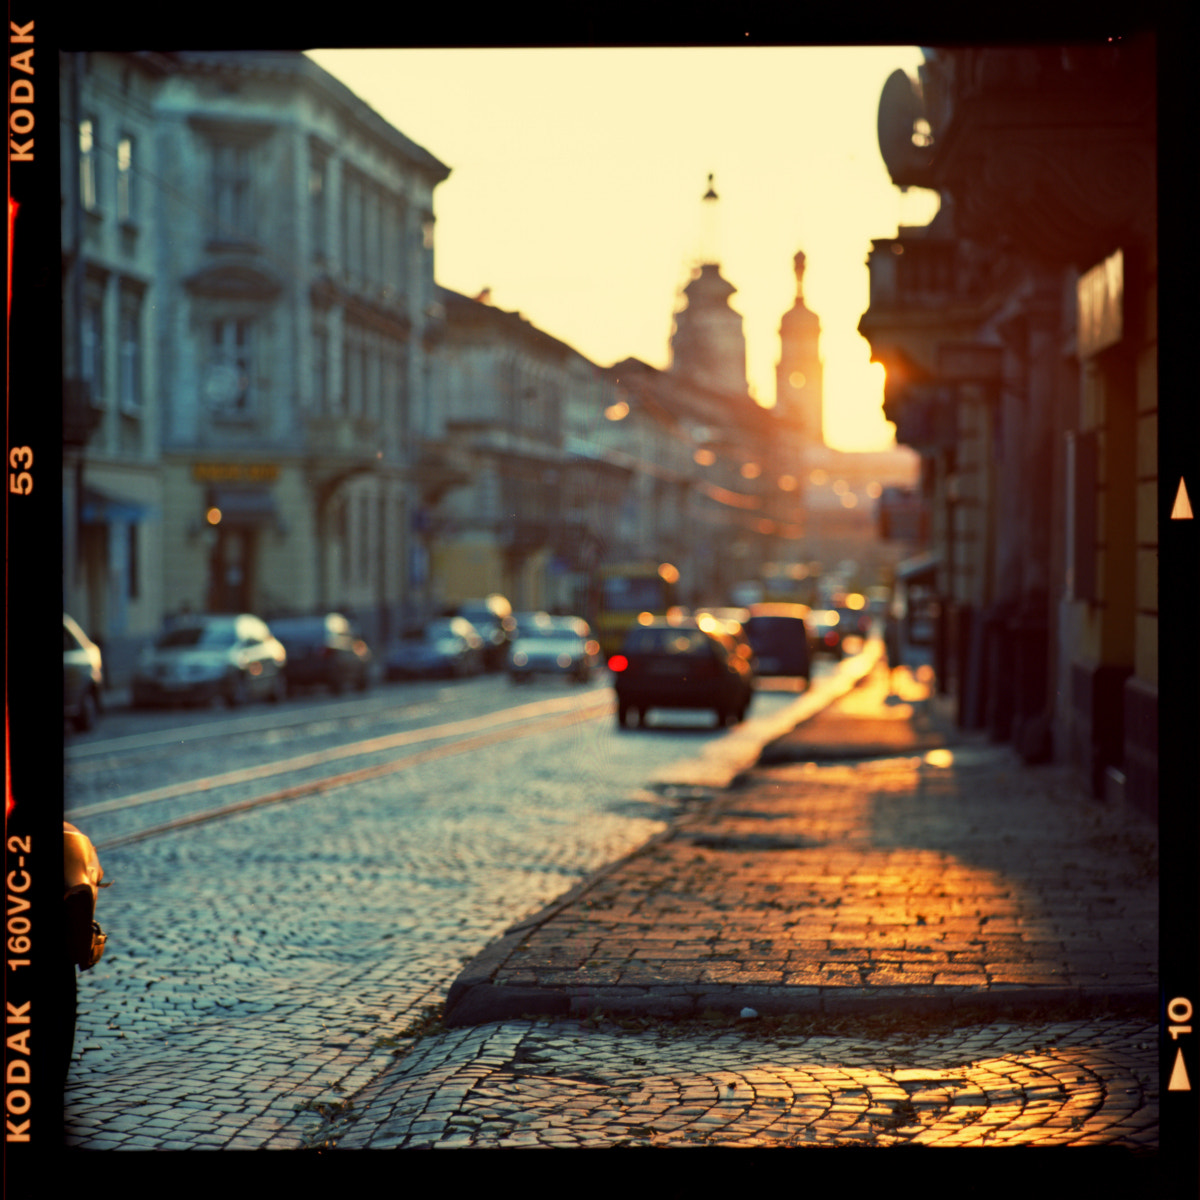 Photograph Sunset street by Denis Allbertovich on 500px